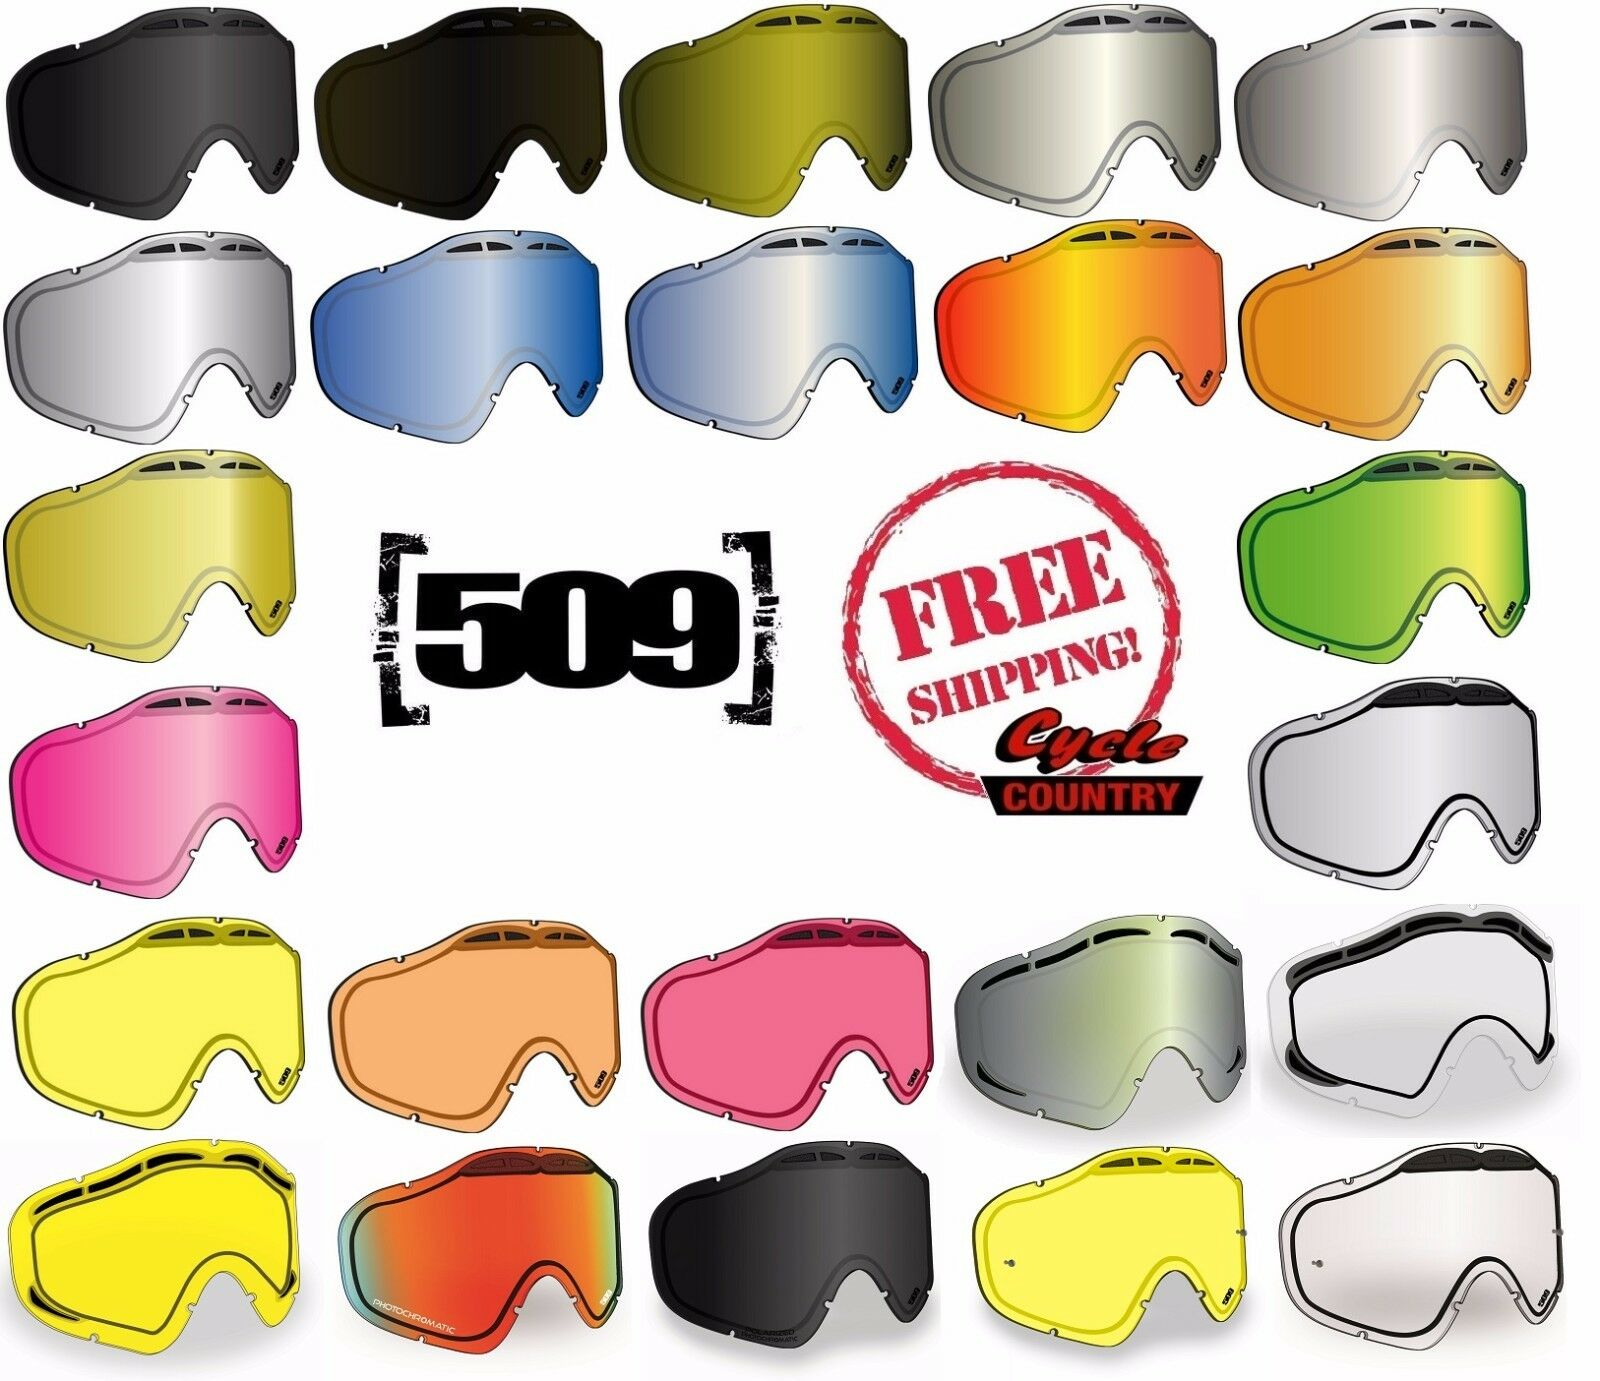 509 SINISTER X5 GOGGLE REPLACEMENT LENS DUAL PANE ANTI FOG SNOWMOBILE SNOW SKI